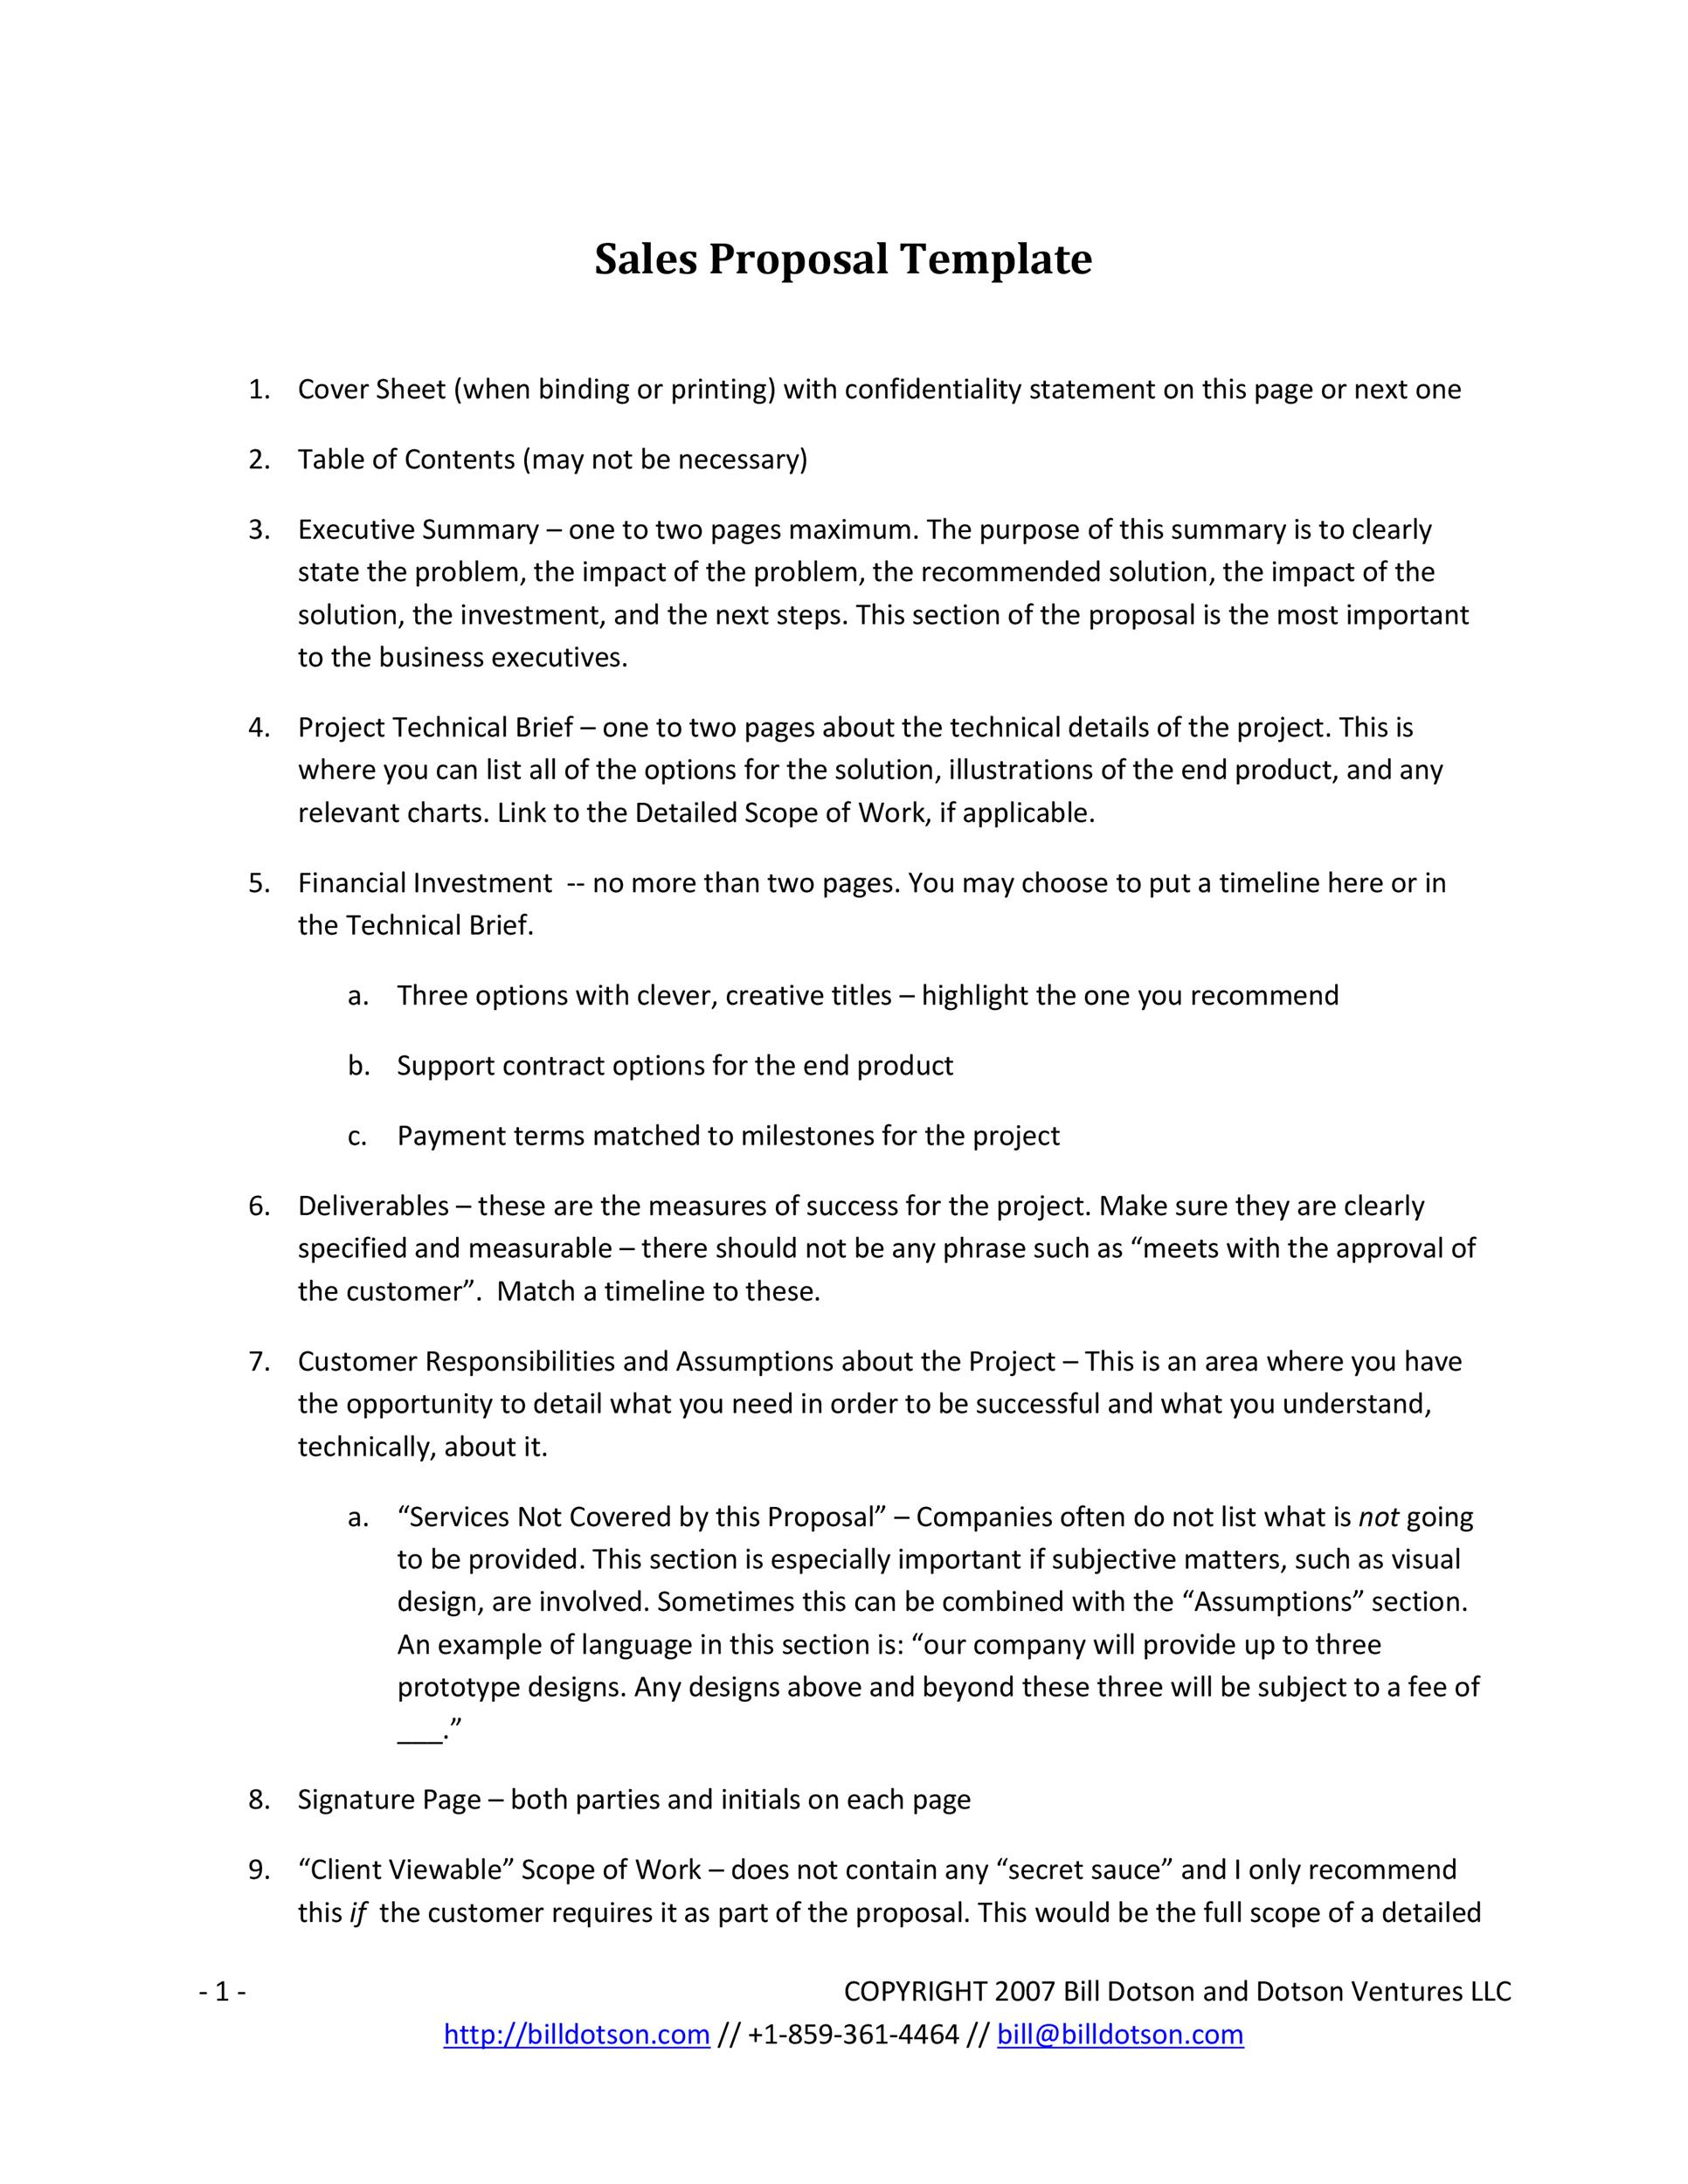 Work Proposal Business Proposal Business Proposal Templates